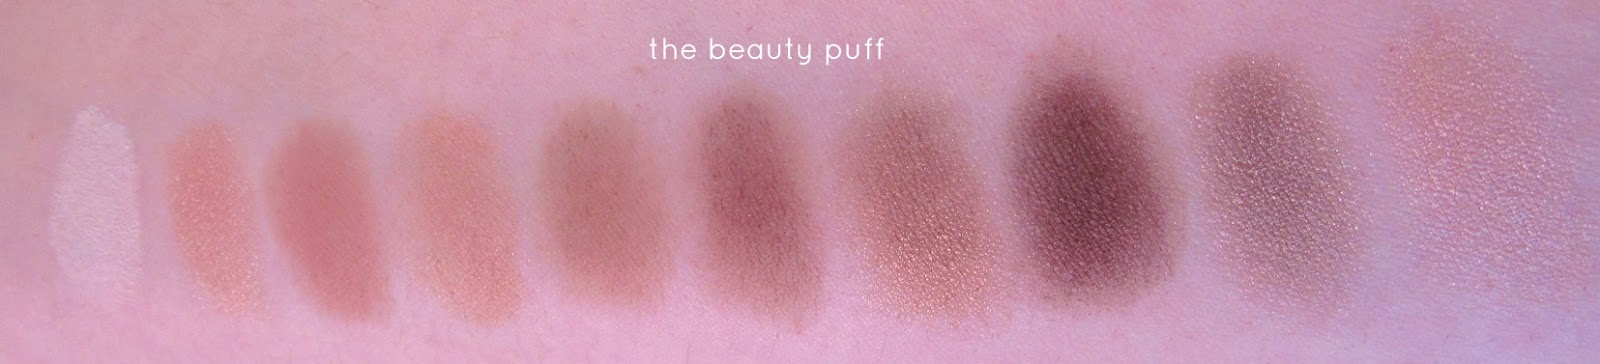 l'oreal la palette nude 1 swatch - the beauty puff